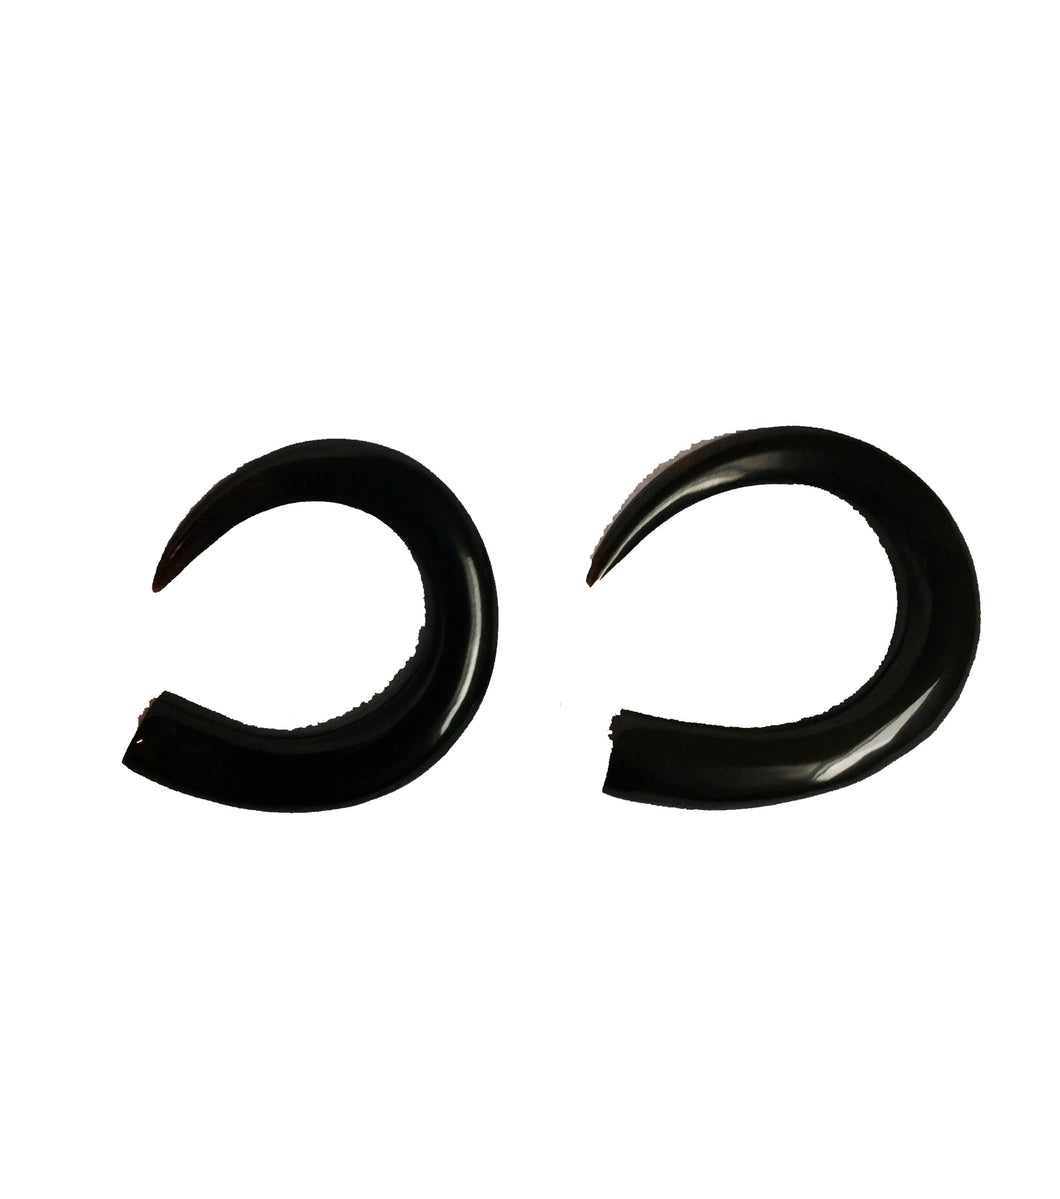 Talon Buffalo Ear Plugs 9/16 14mm